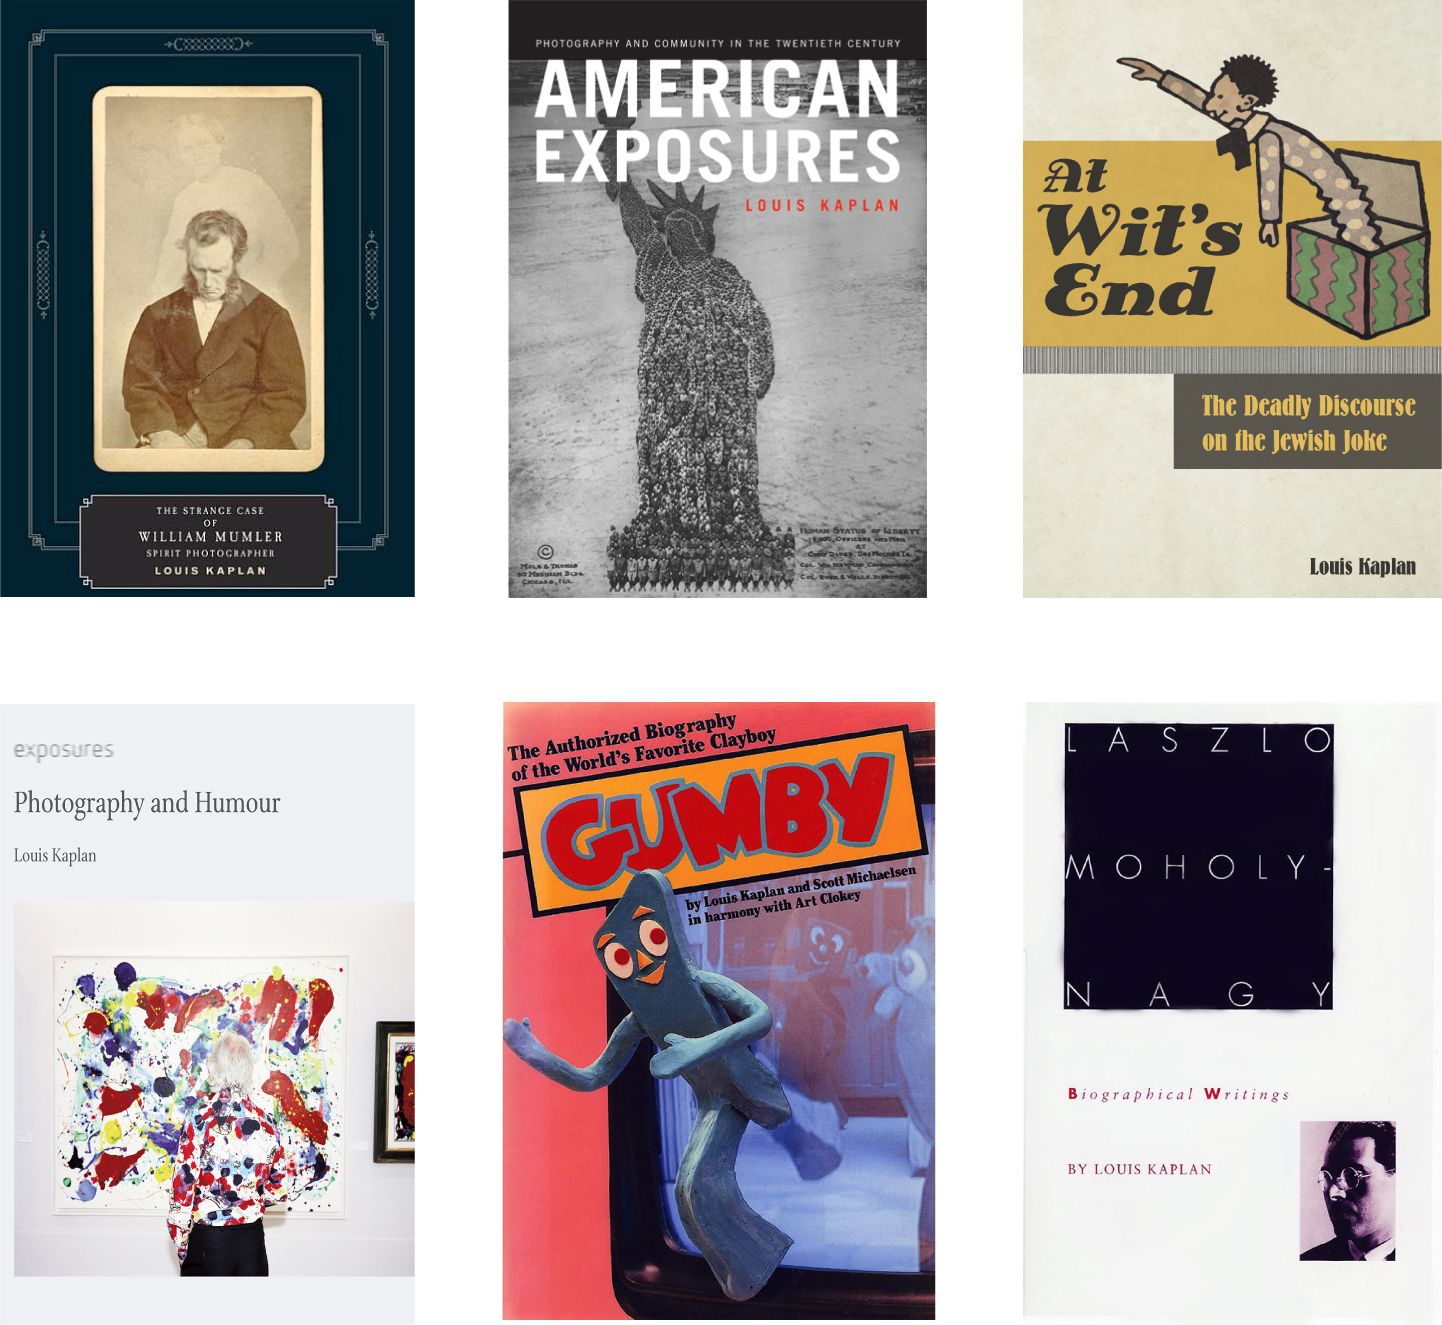 Kaplan Strange Case of William Mumler; American Exposures; At Wit's End; Photography and Humour; Gumby; Laszlo Moholy-Nagy